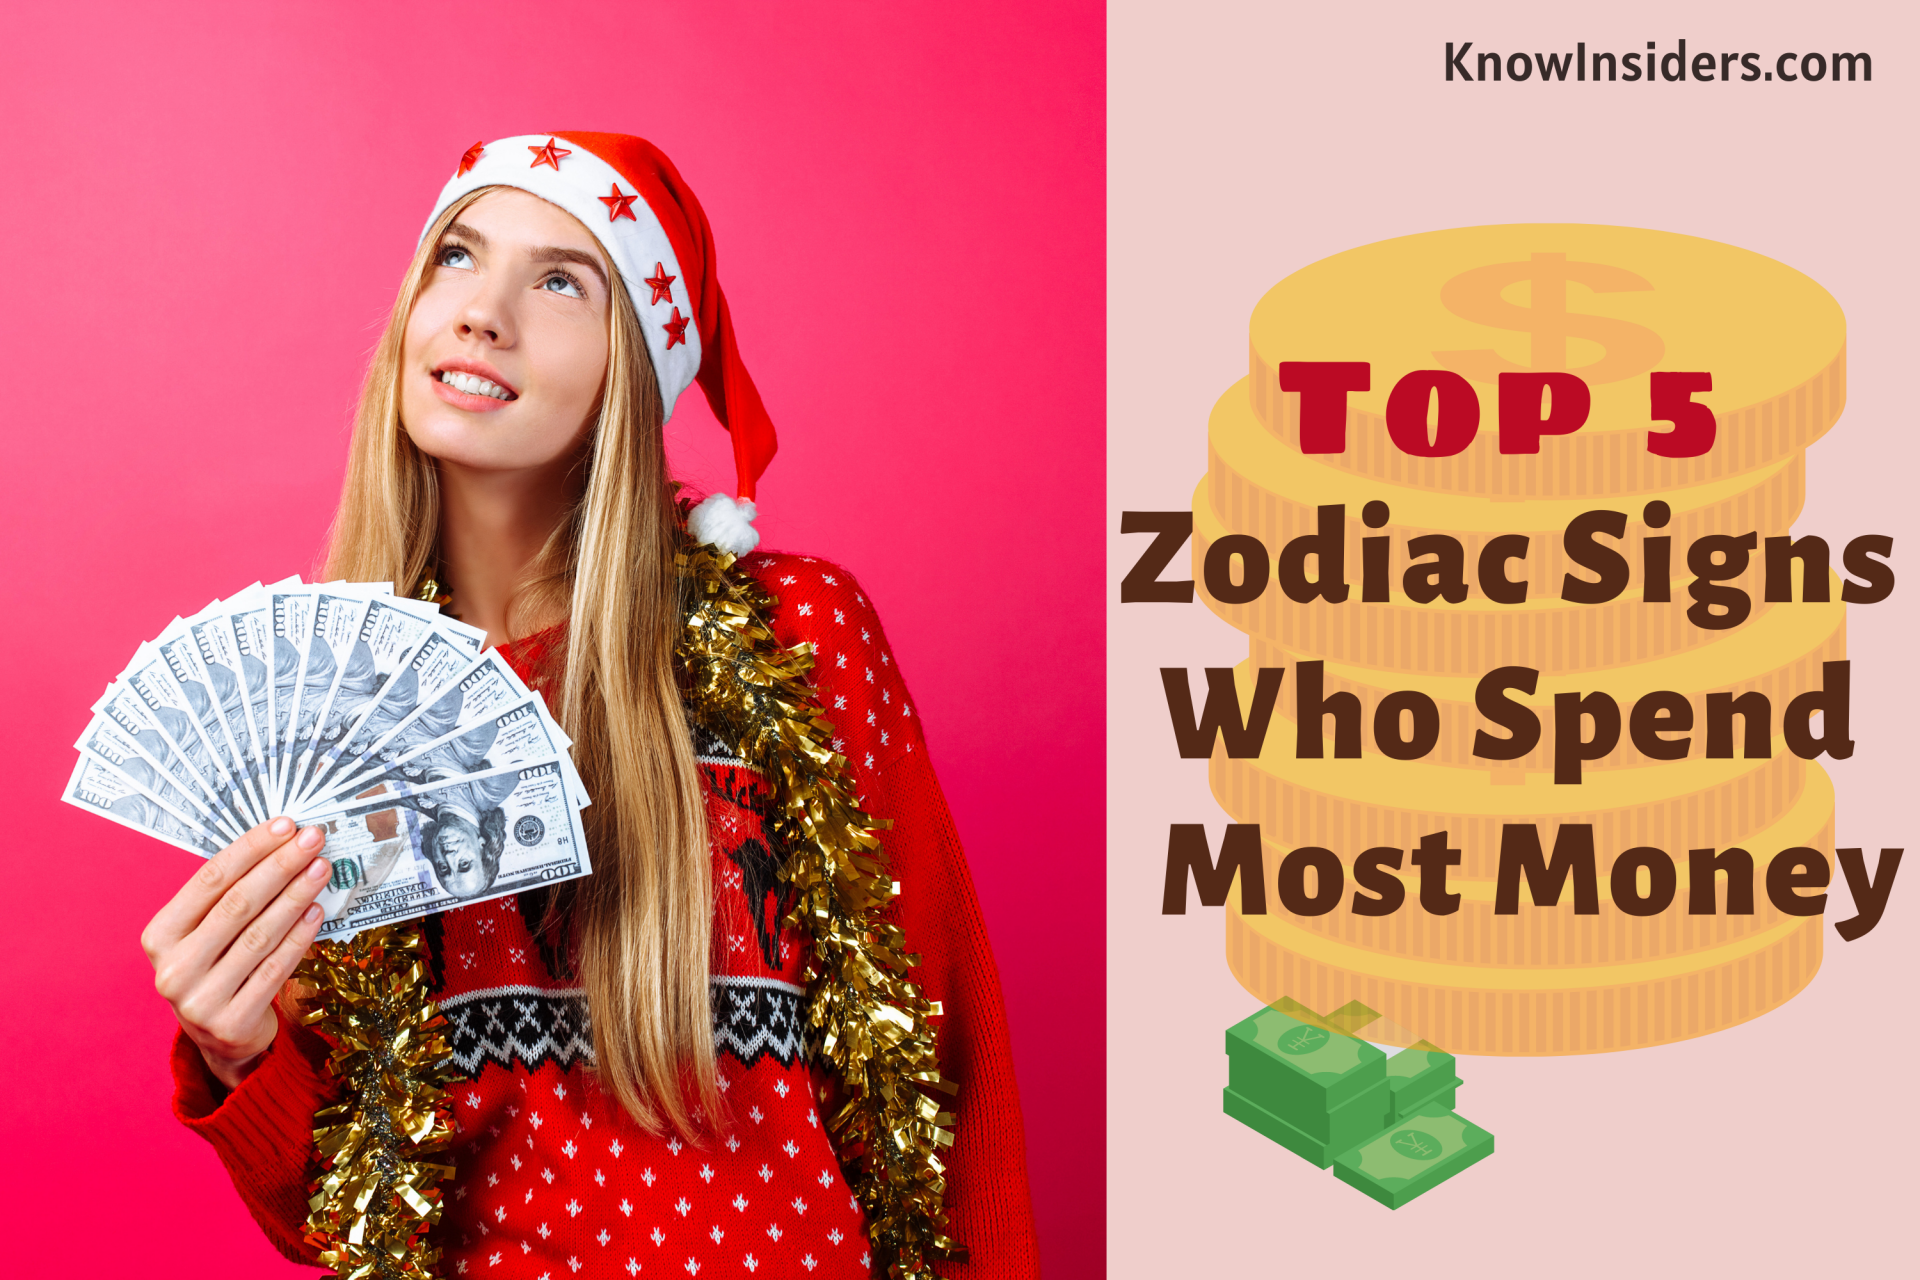 Top 5 Zodiac Signs That Spend the Most Money According to Astrology